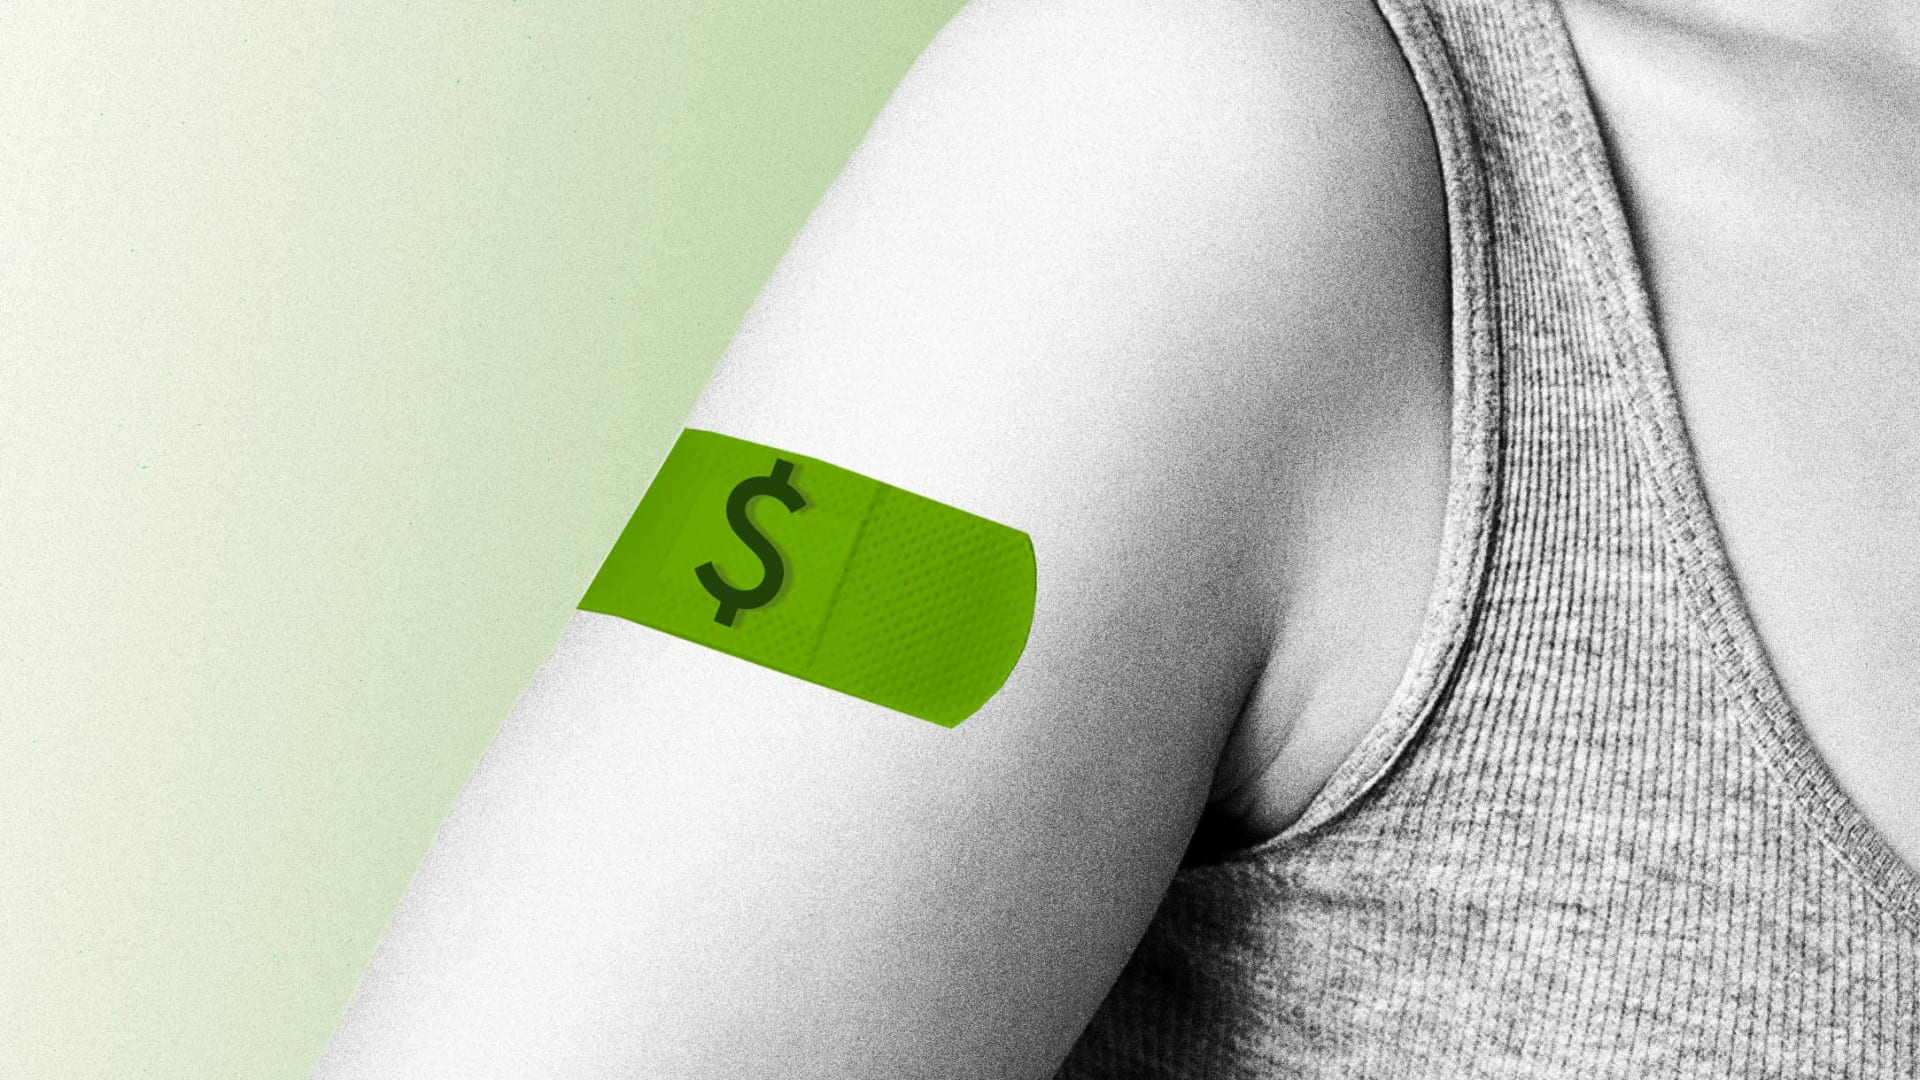 Cash, Comps, and Time Off: How Small Businesses Are Encouraging Covid Vaccinations